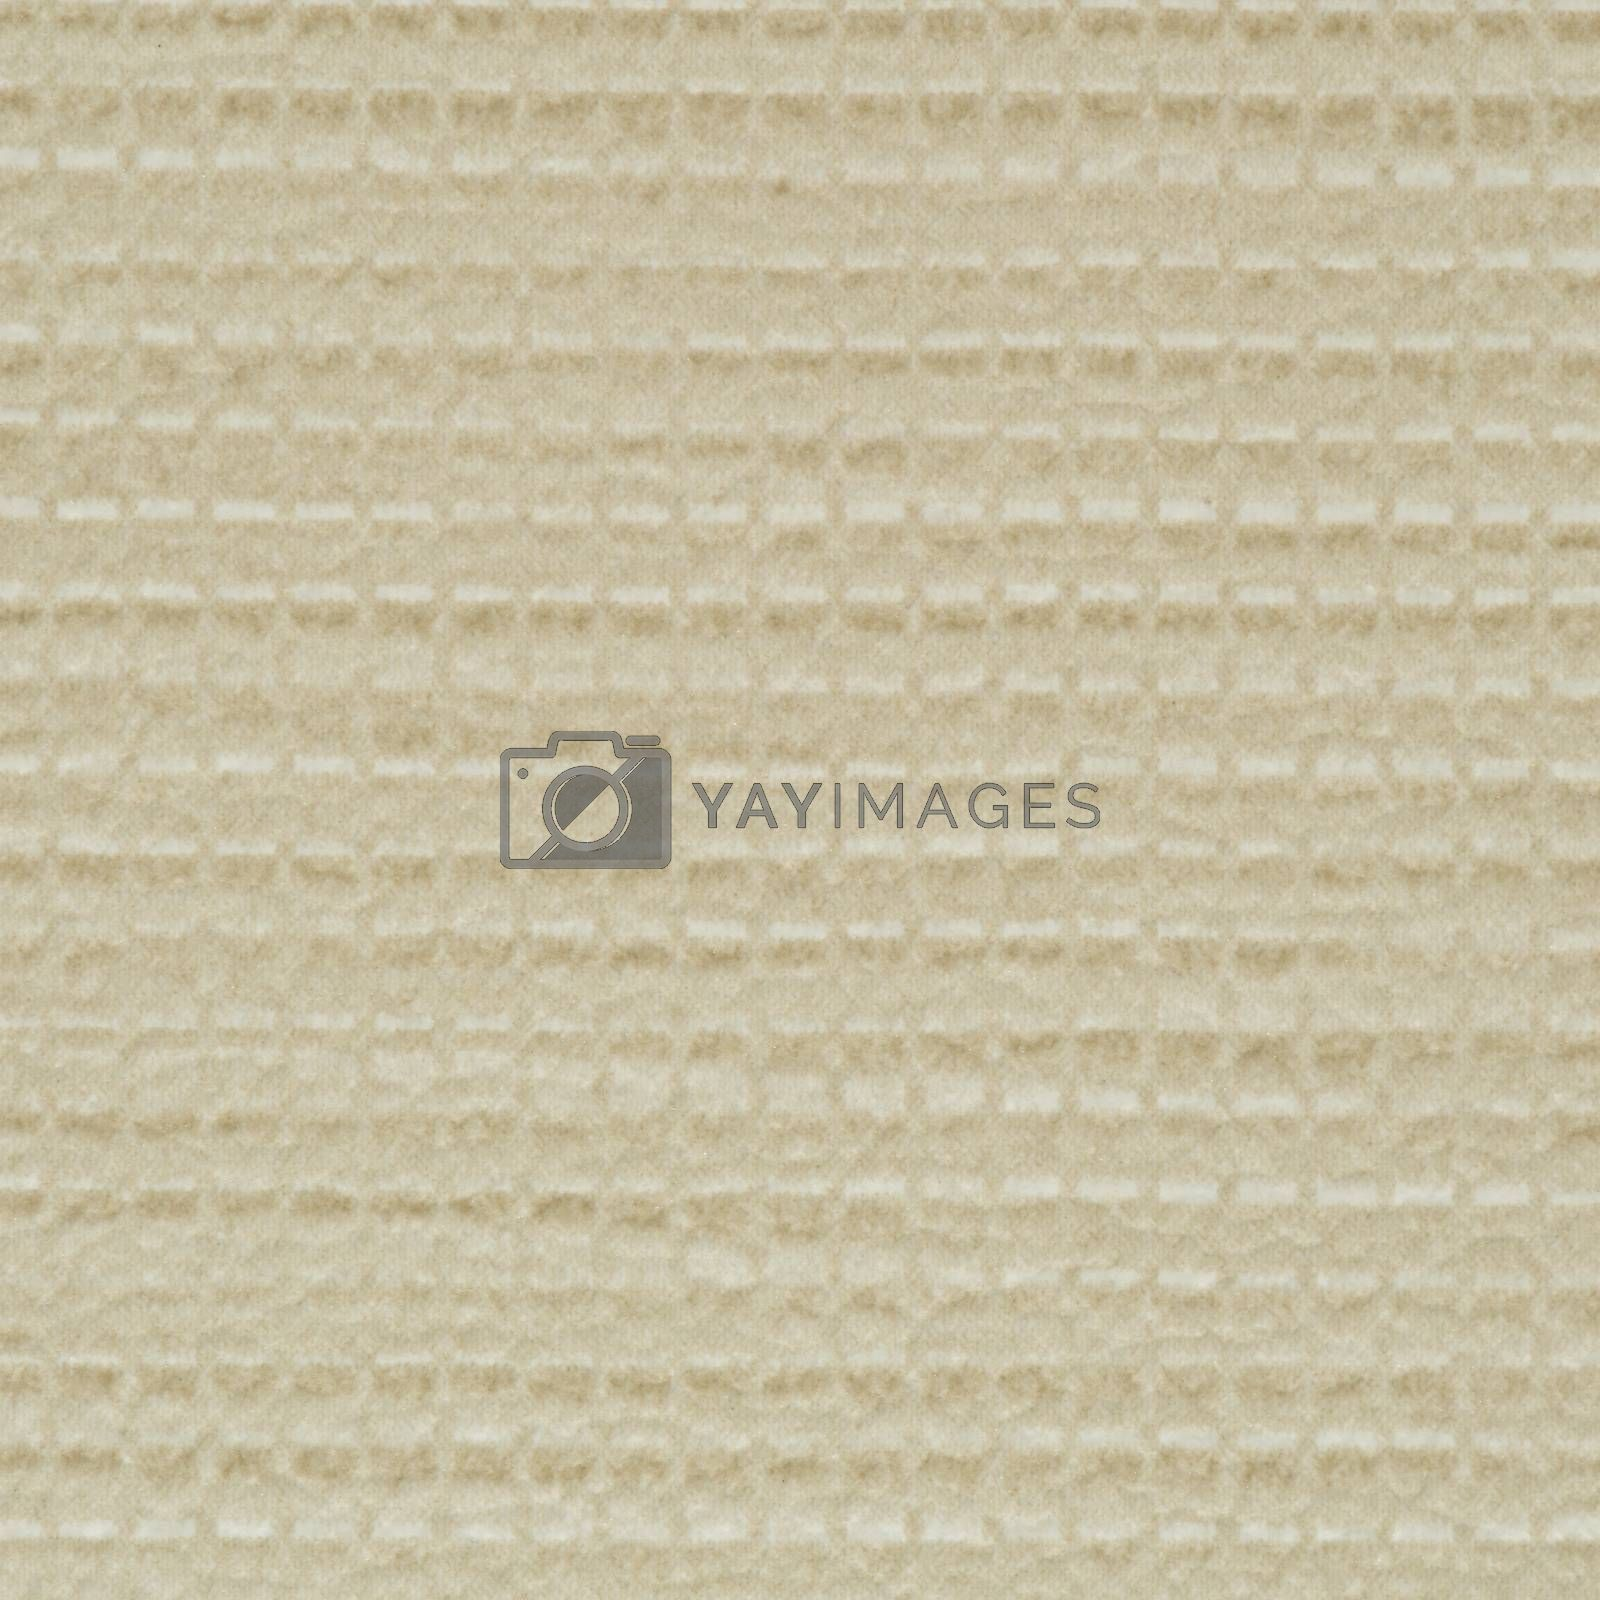 Royalty free image of Green vinyl texture by homydesign